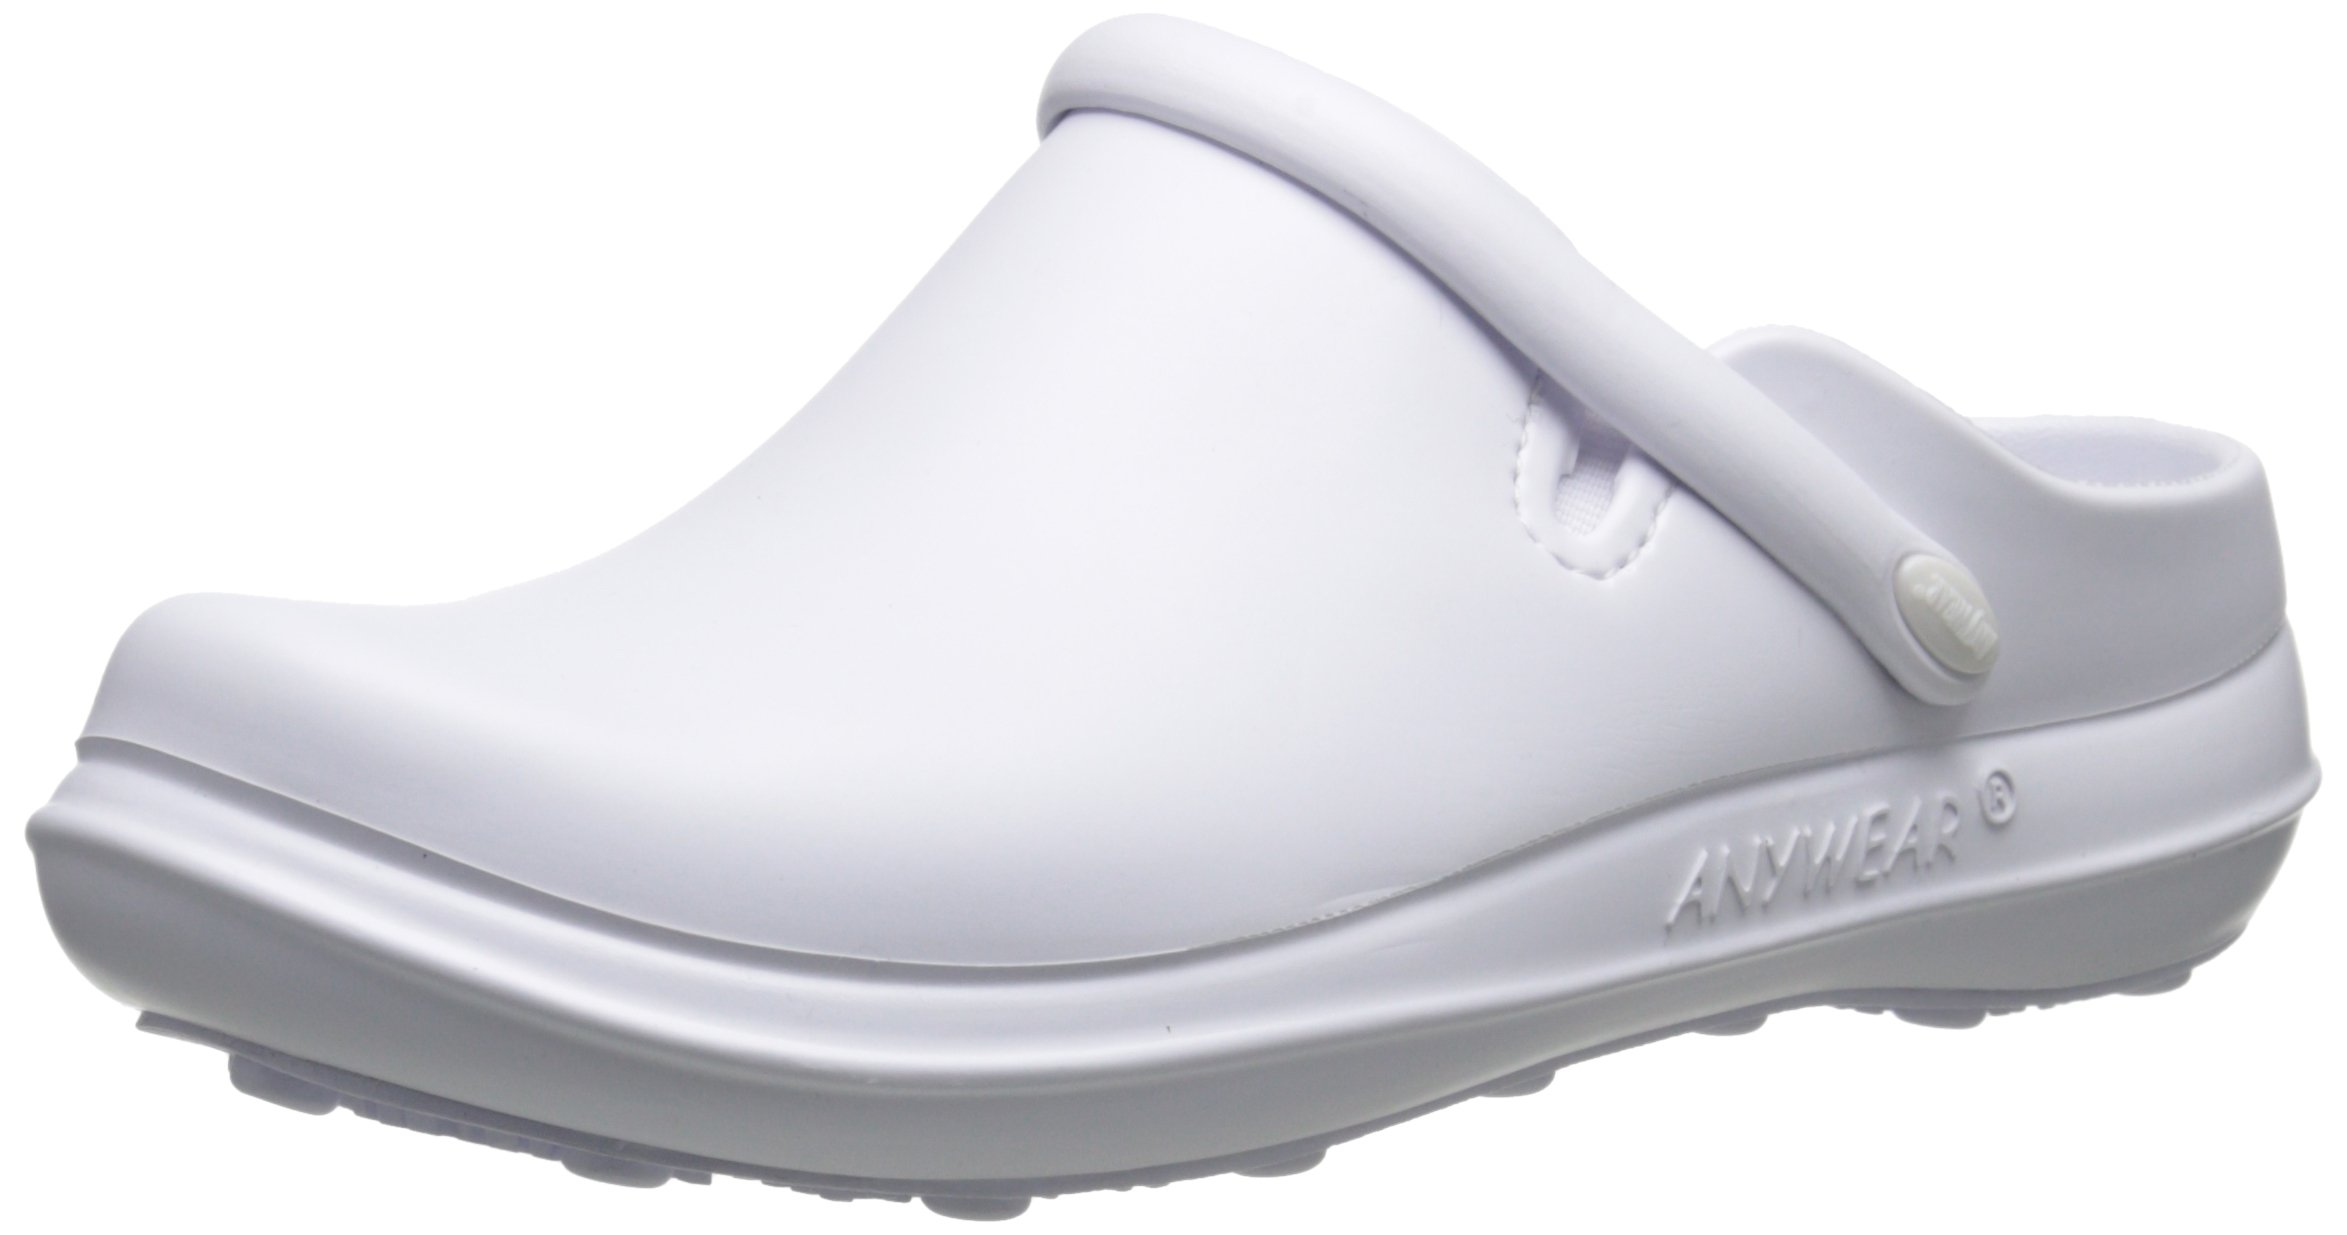 AnyWear Women's Alexis Health Care and Food Service Shoe, White, 9 M US